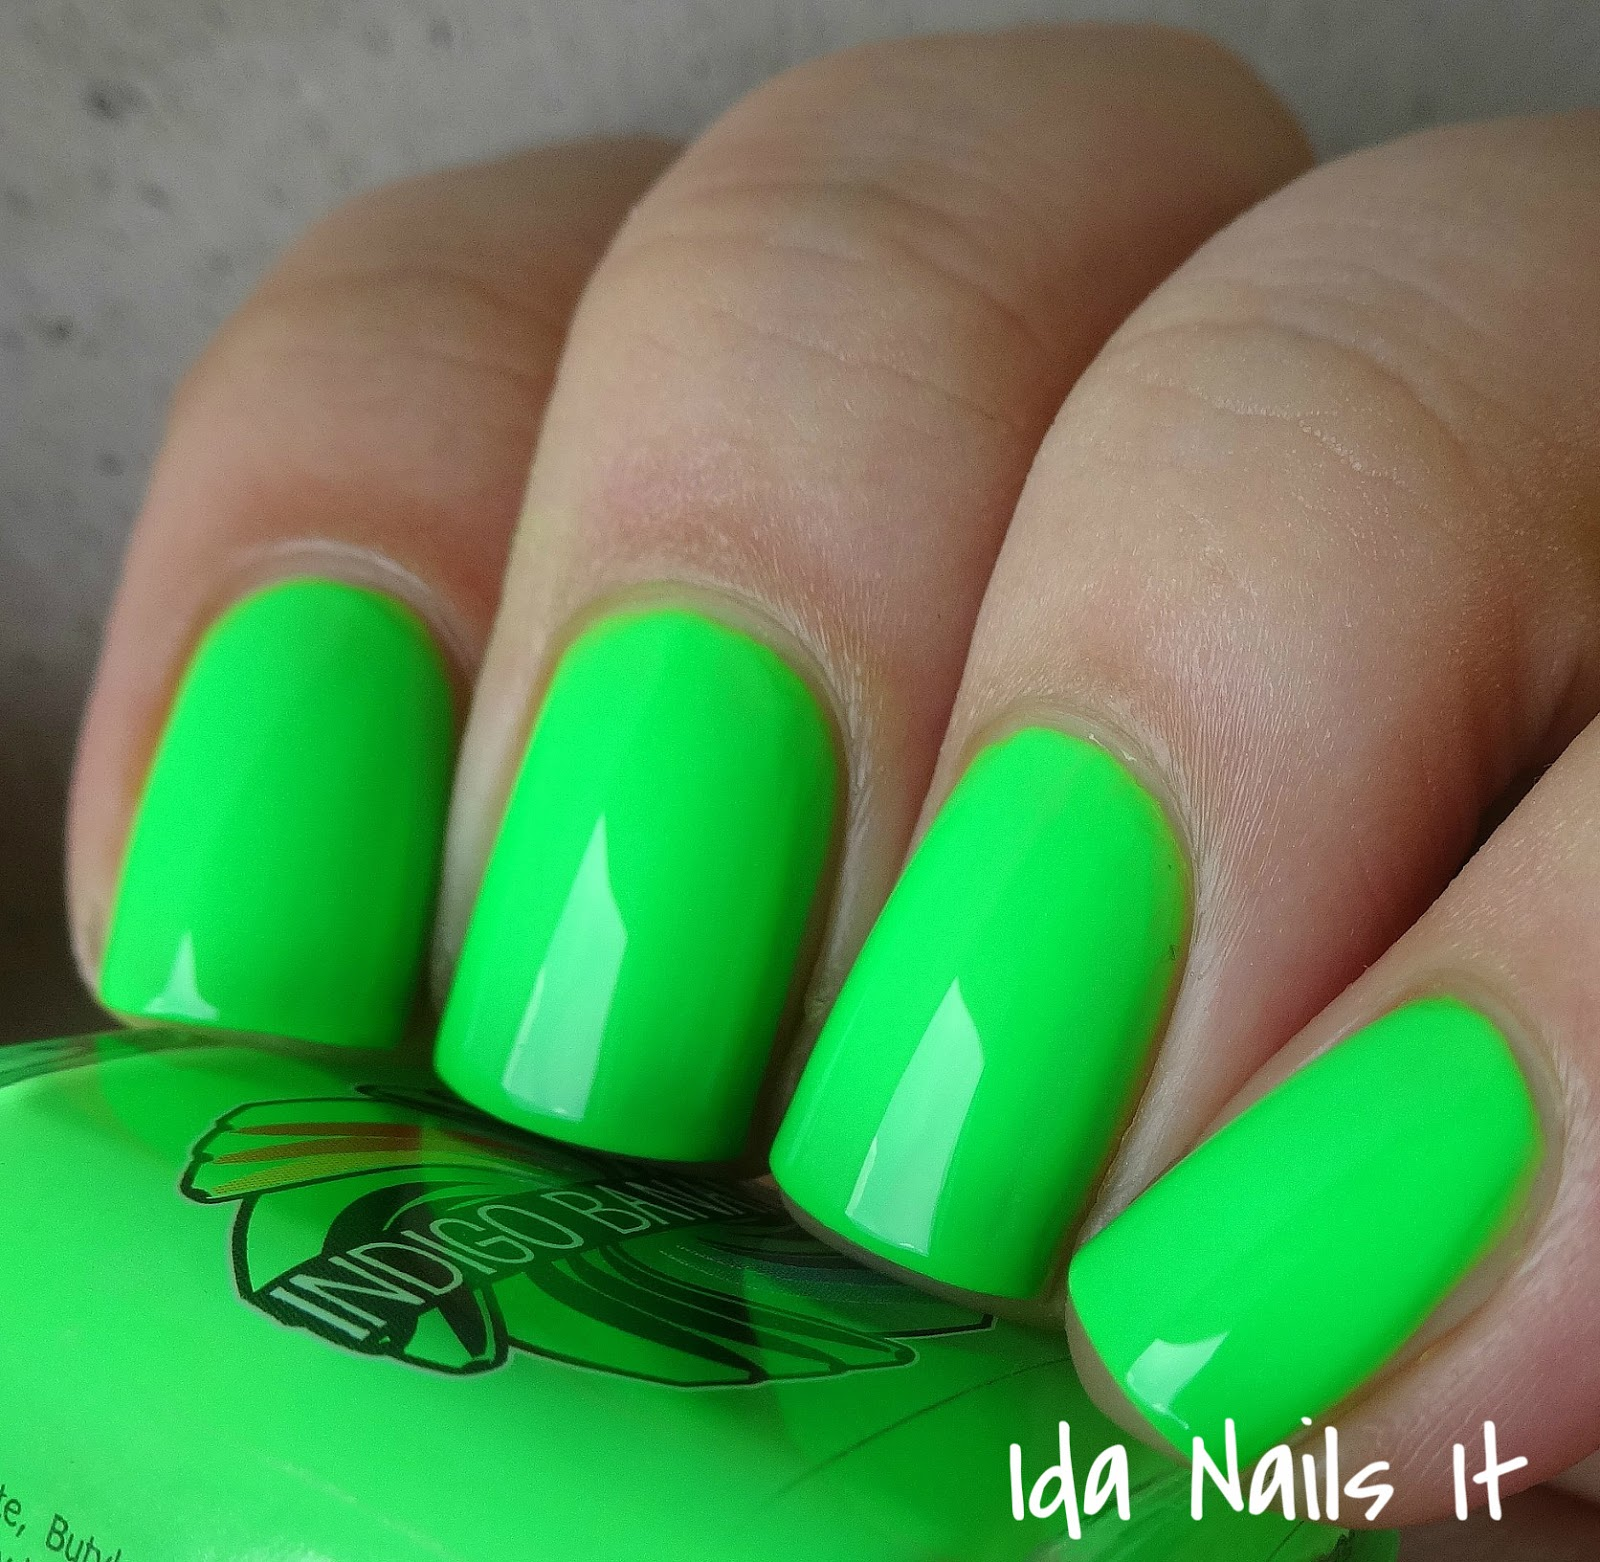 Ida Nails It Indigo Bananas Neon The 10th Element Collection Swatches And Review